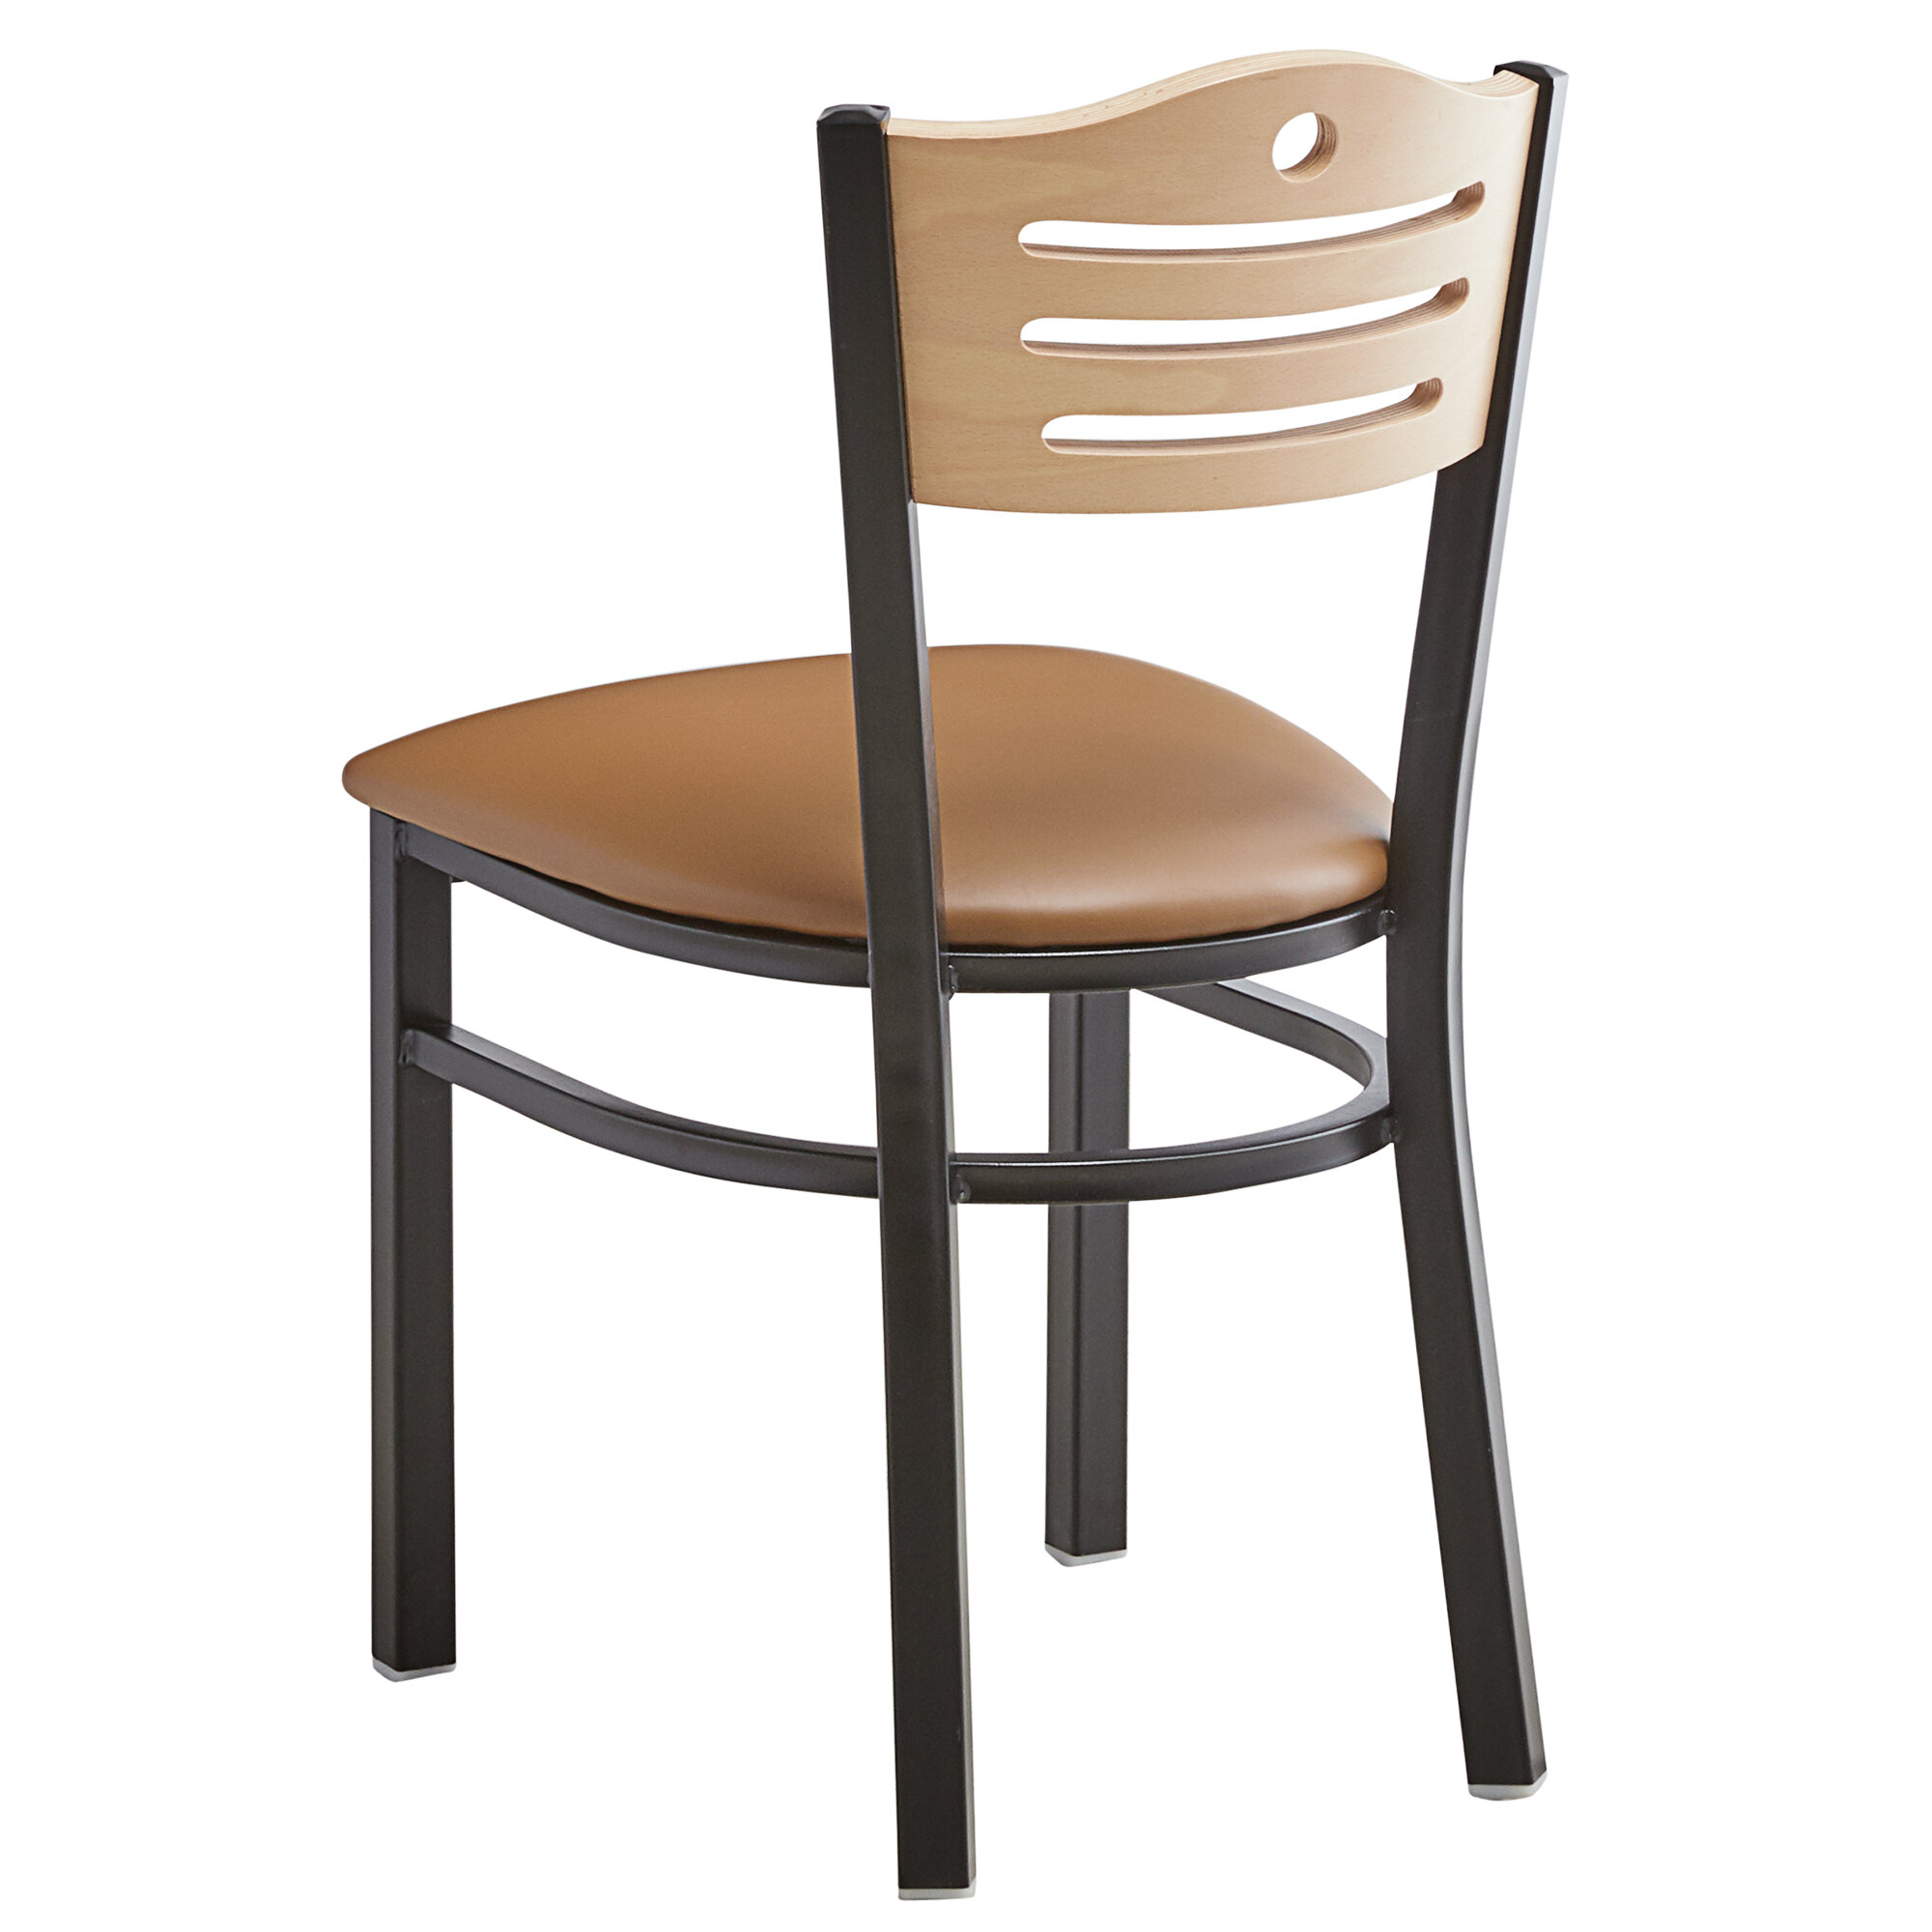 #174 - Slat Back Design Restaurant Metal Chair with Natural Wood Back and Light Brown Vinyl Seat